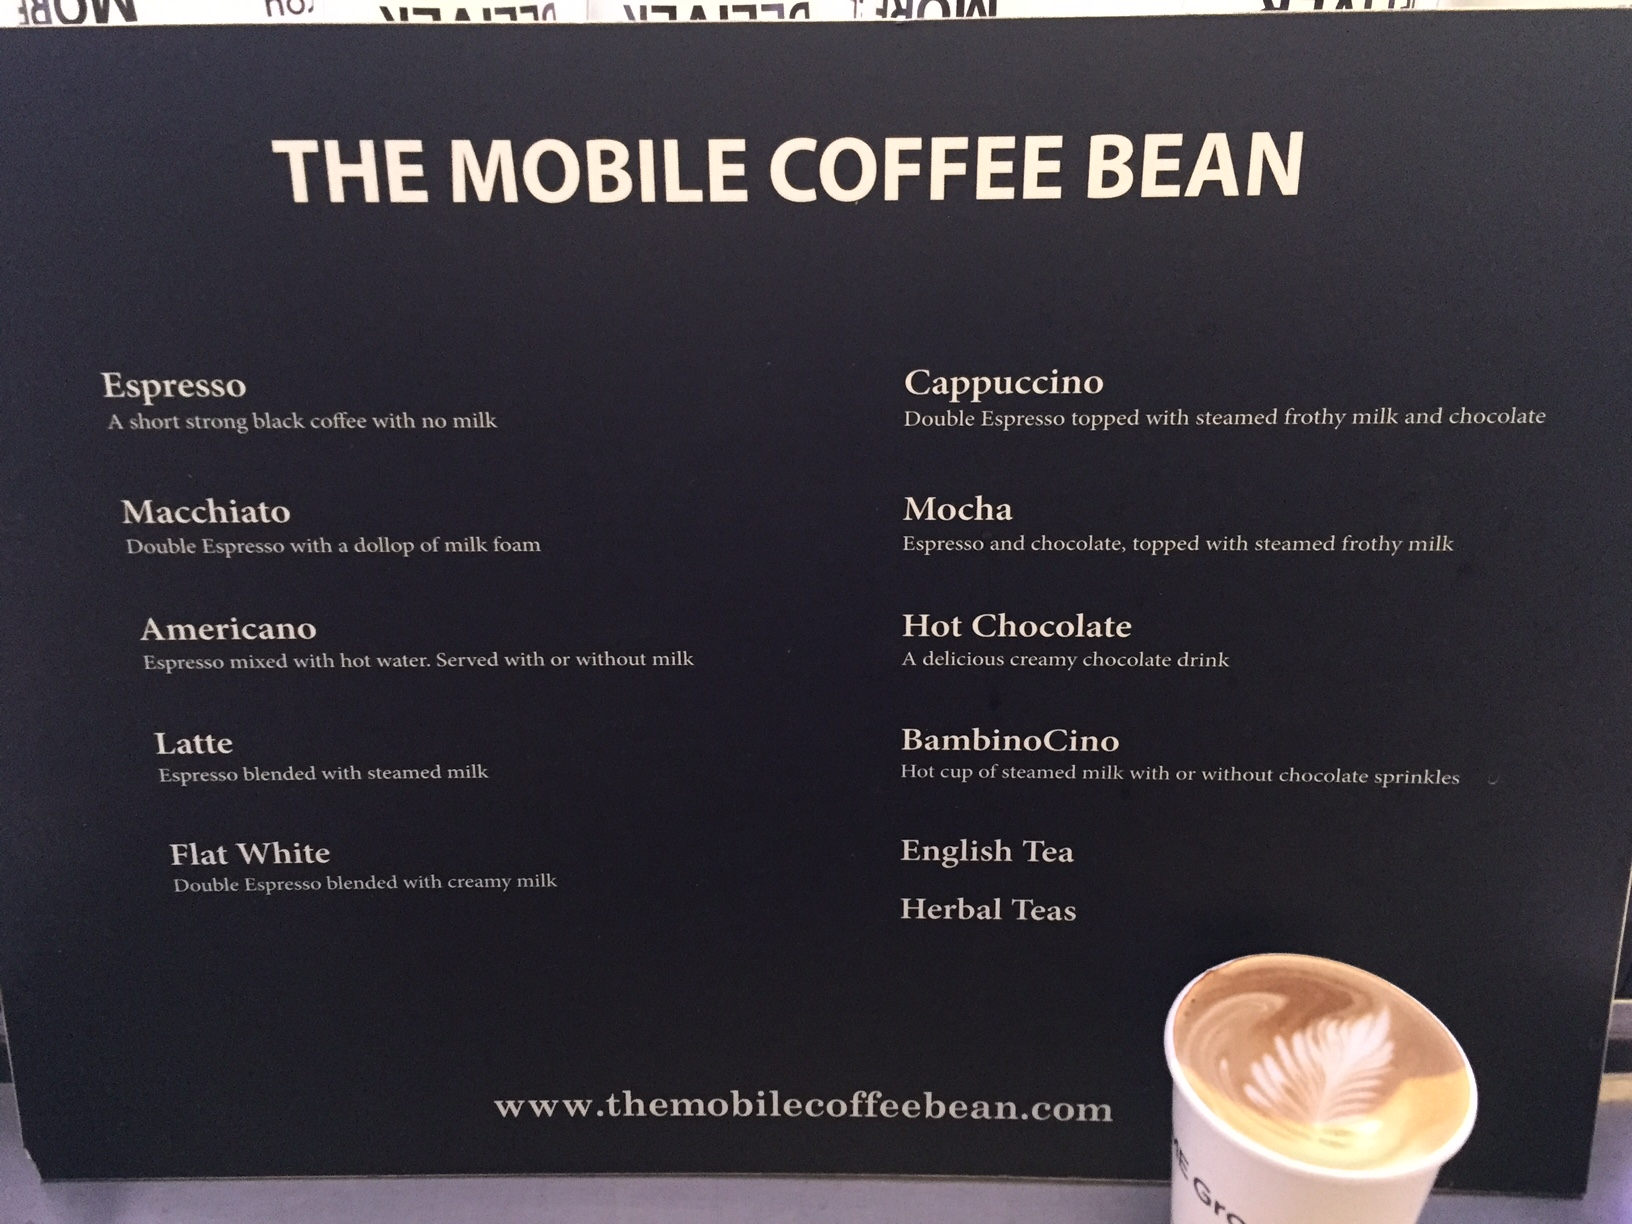 An example of The Mobile Coffee Bean mobile coffee menu